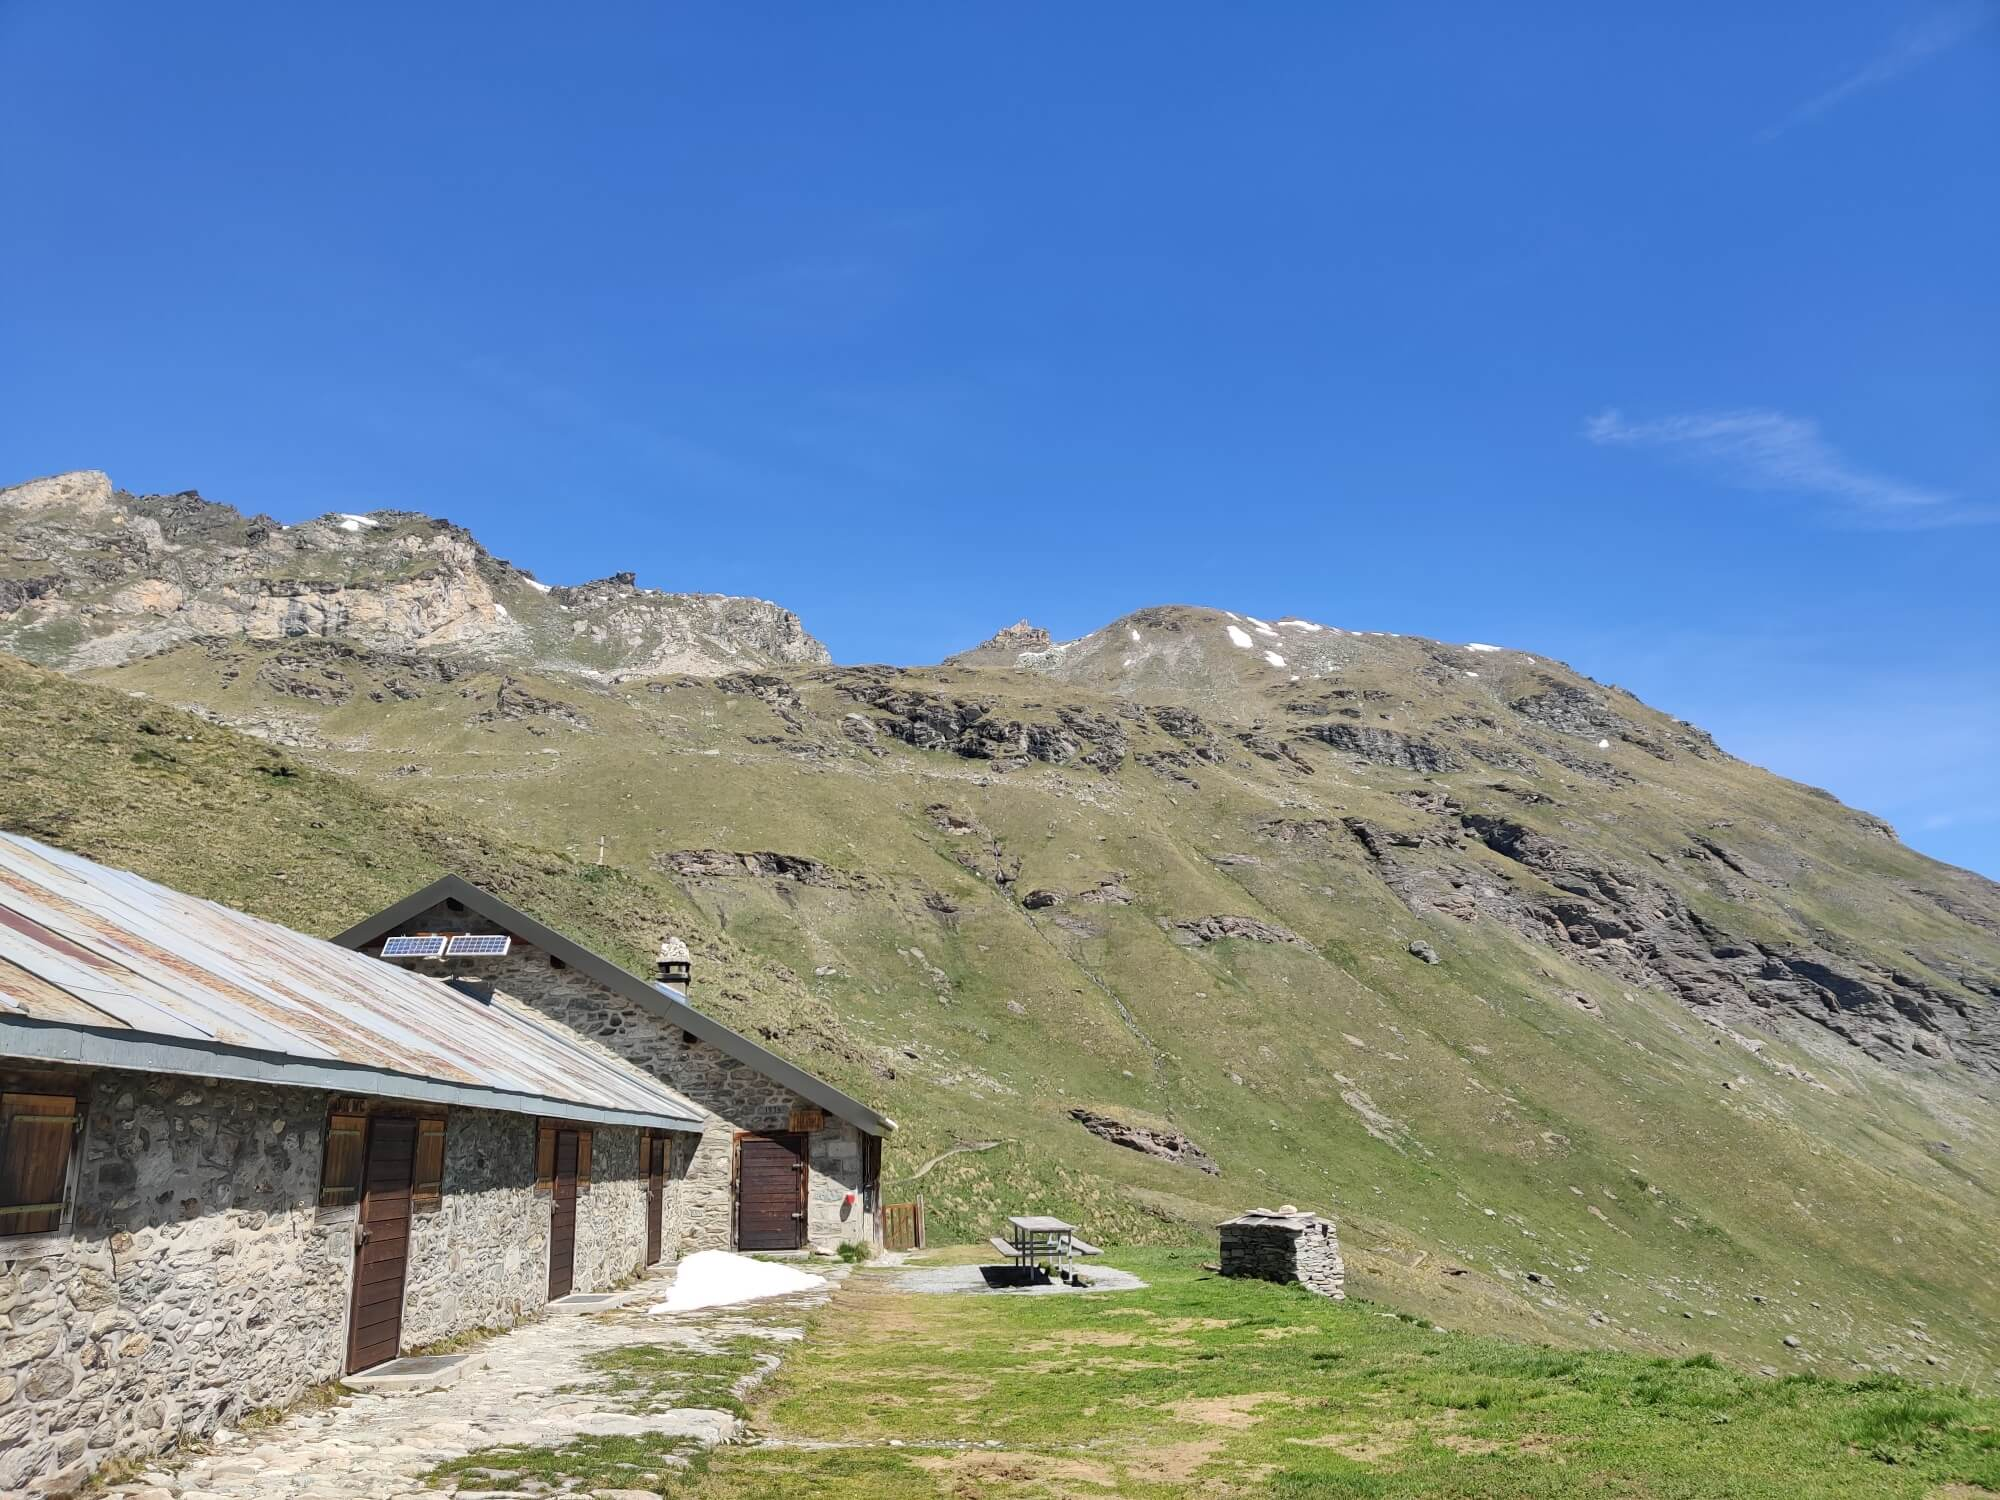 Refuge la Barma:  Col Des Roux can be seen in the low point of the mountain range in the background